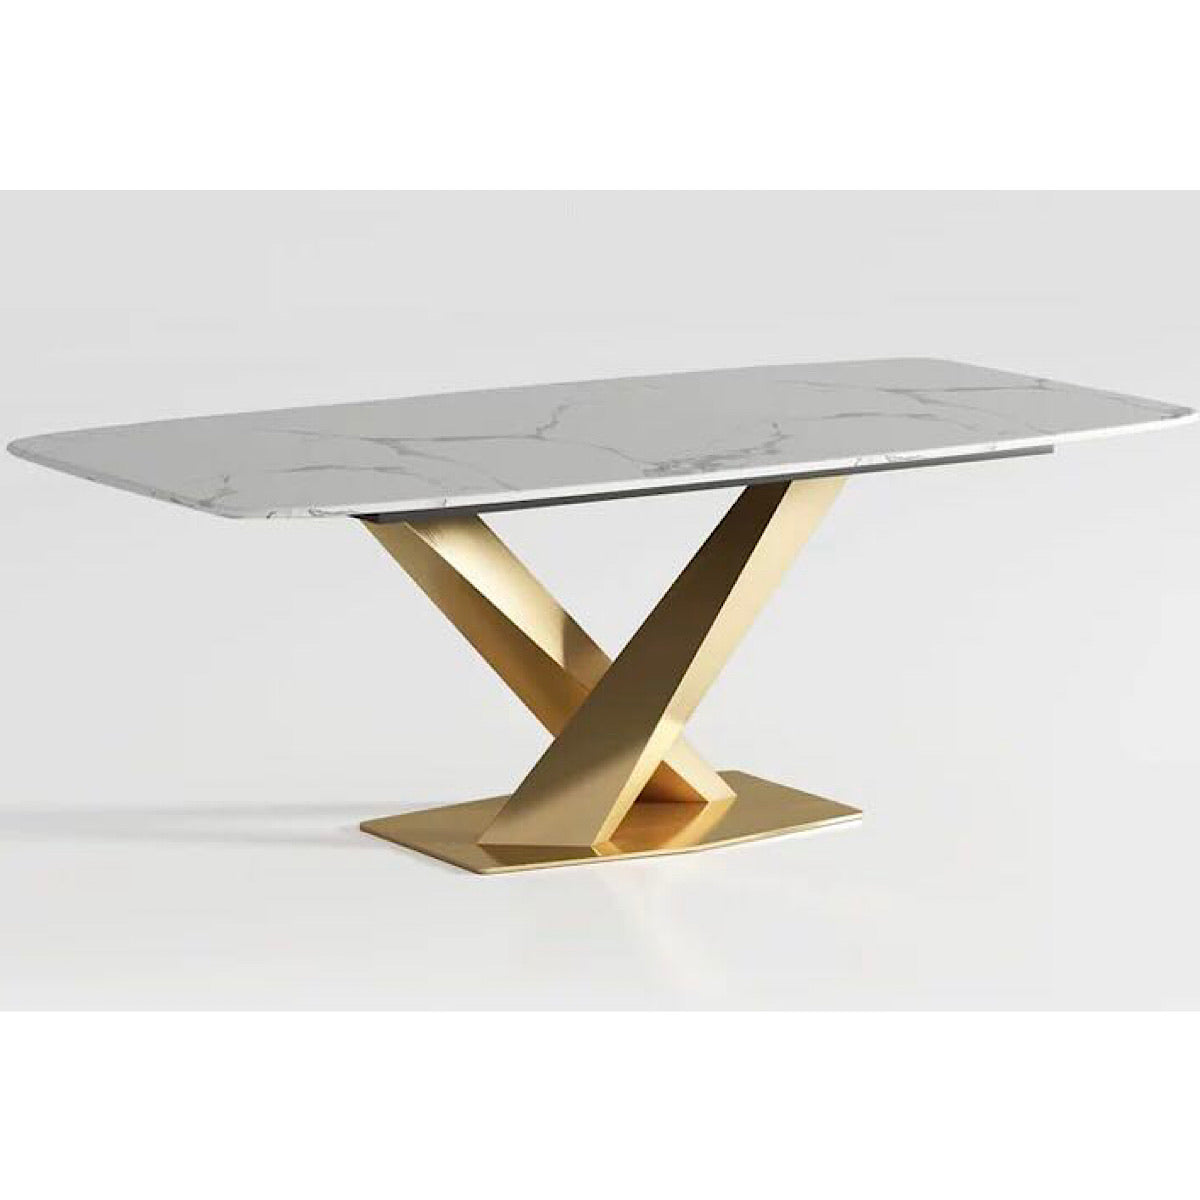 Rays Marble Dining Table - mhomefurniture